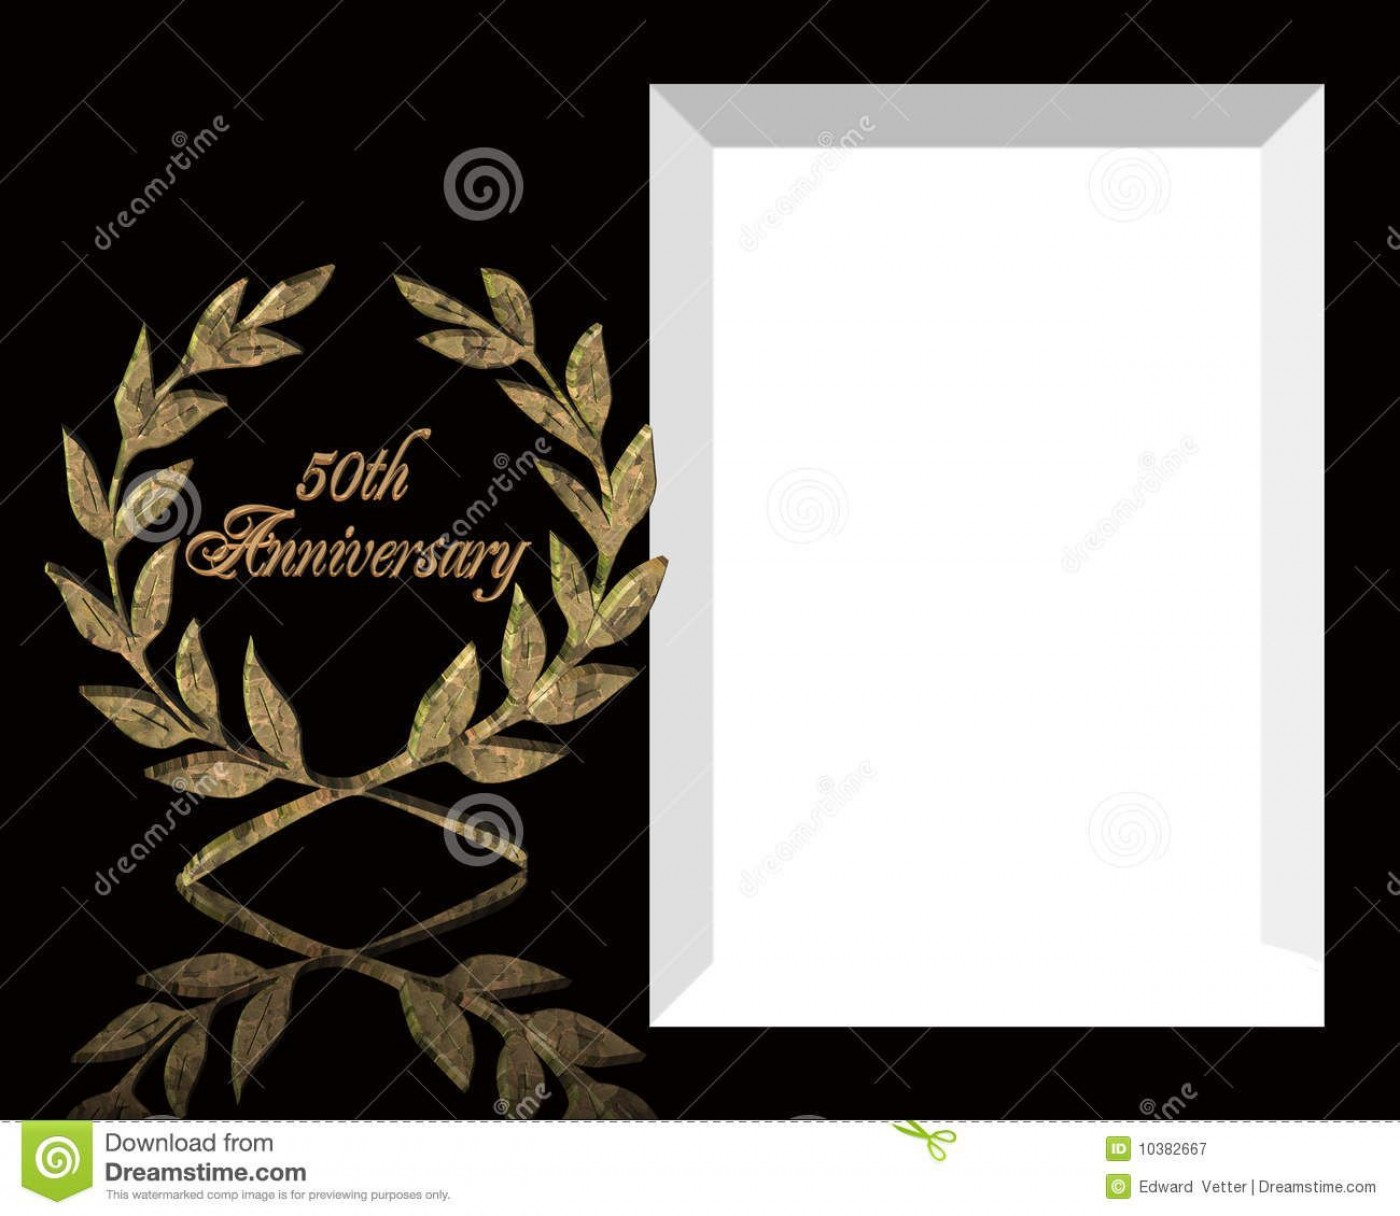 005 Beautiful 50th Anniversary Party Invitation Template Inspiration  Wedding Free Download Microsoft Word1400